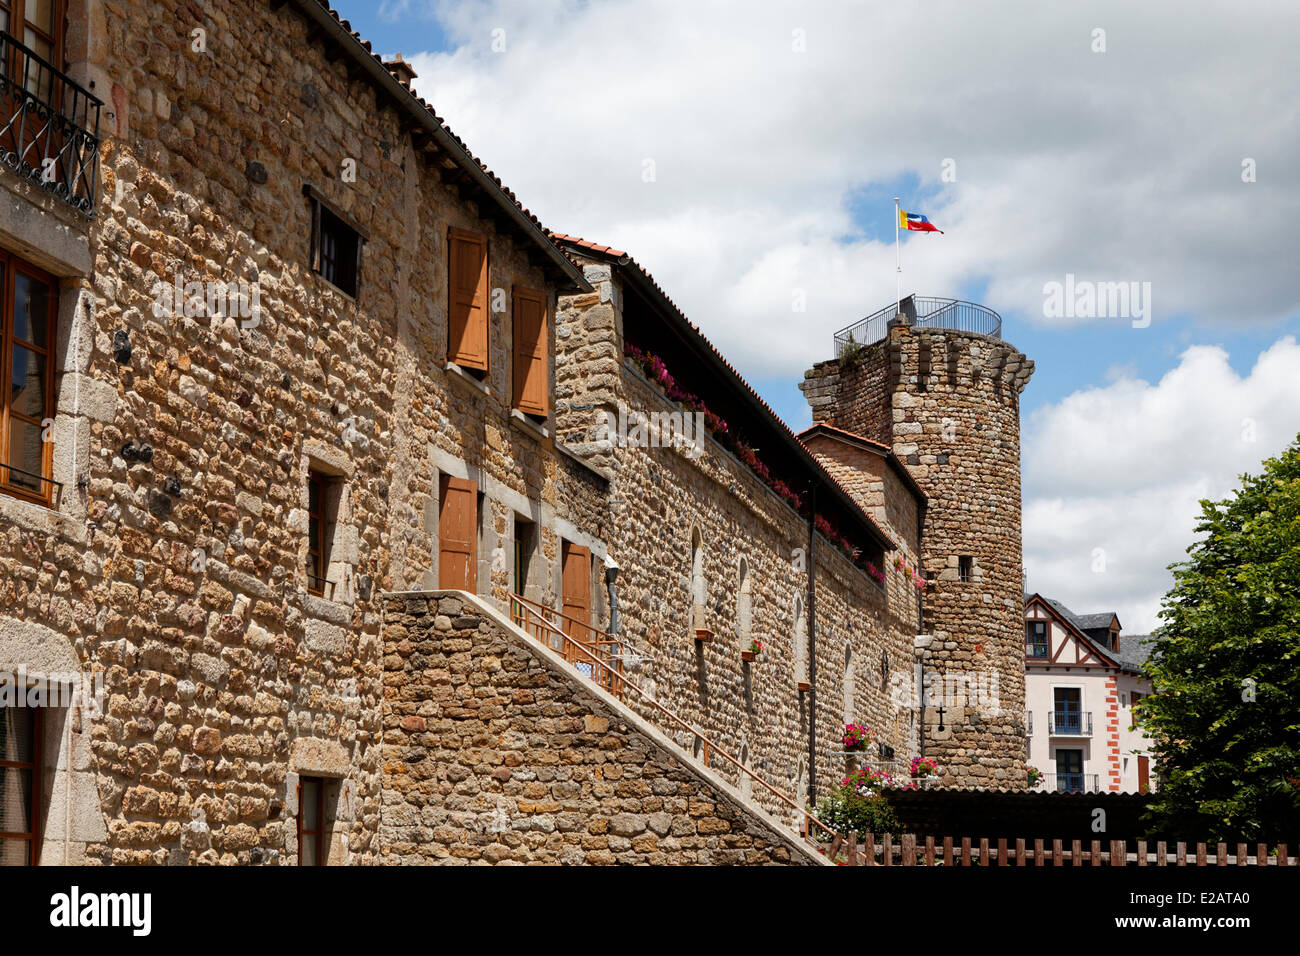 France, Lozere, Le Malzieu Ville, ancient walls and tower Bodon - Stock Image